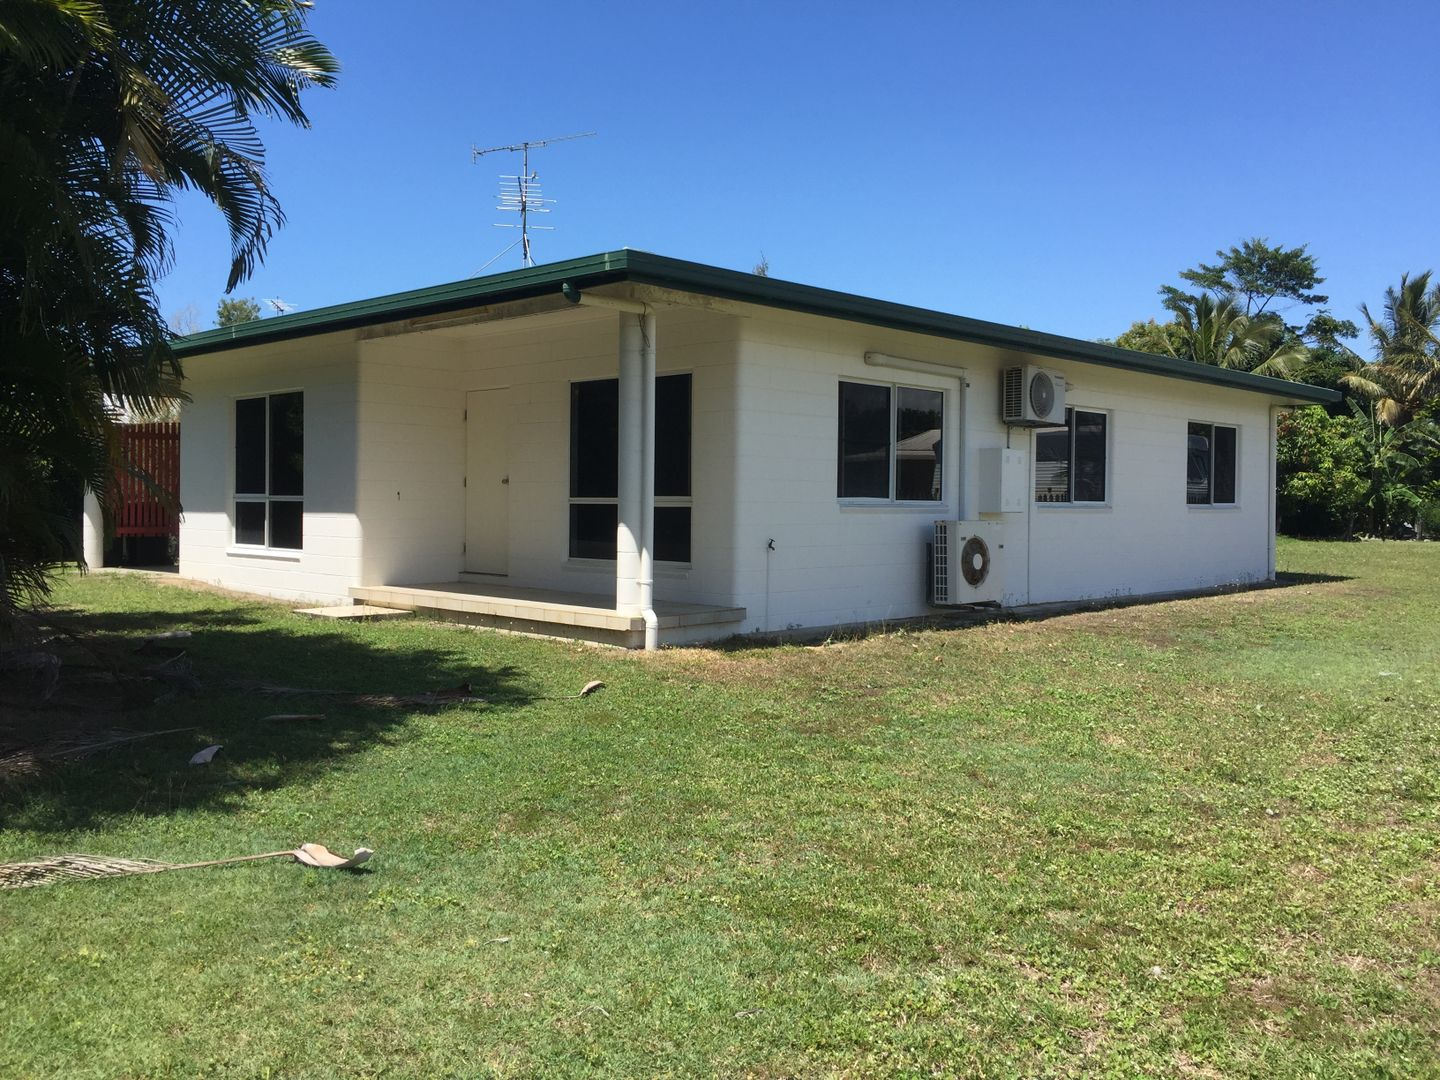 102 Tully Heads Rd, Tully Heads QLD 4854, Image 0